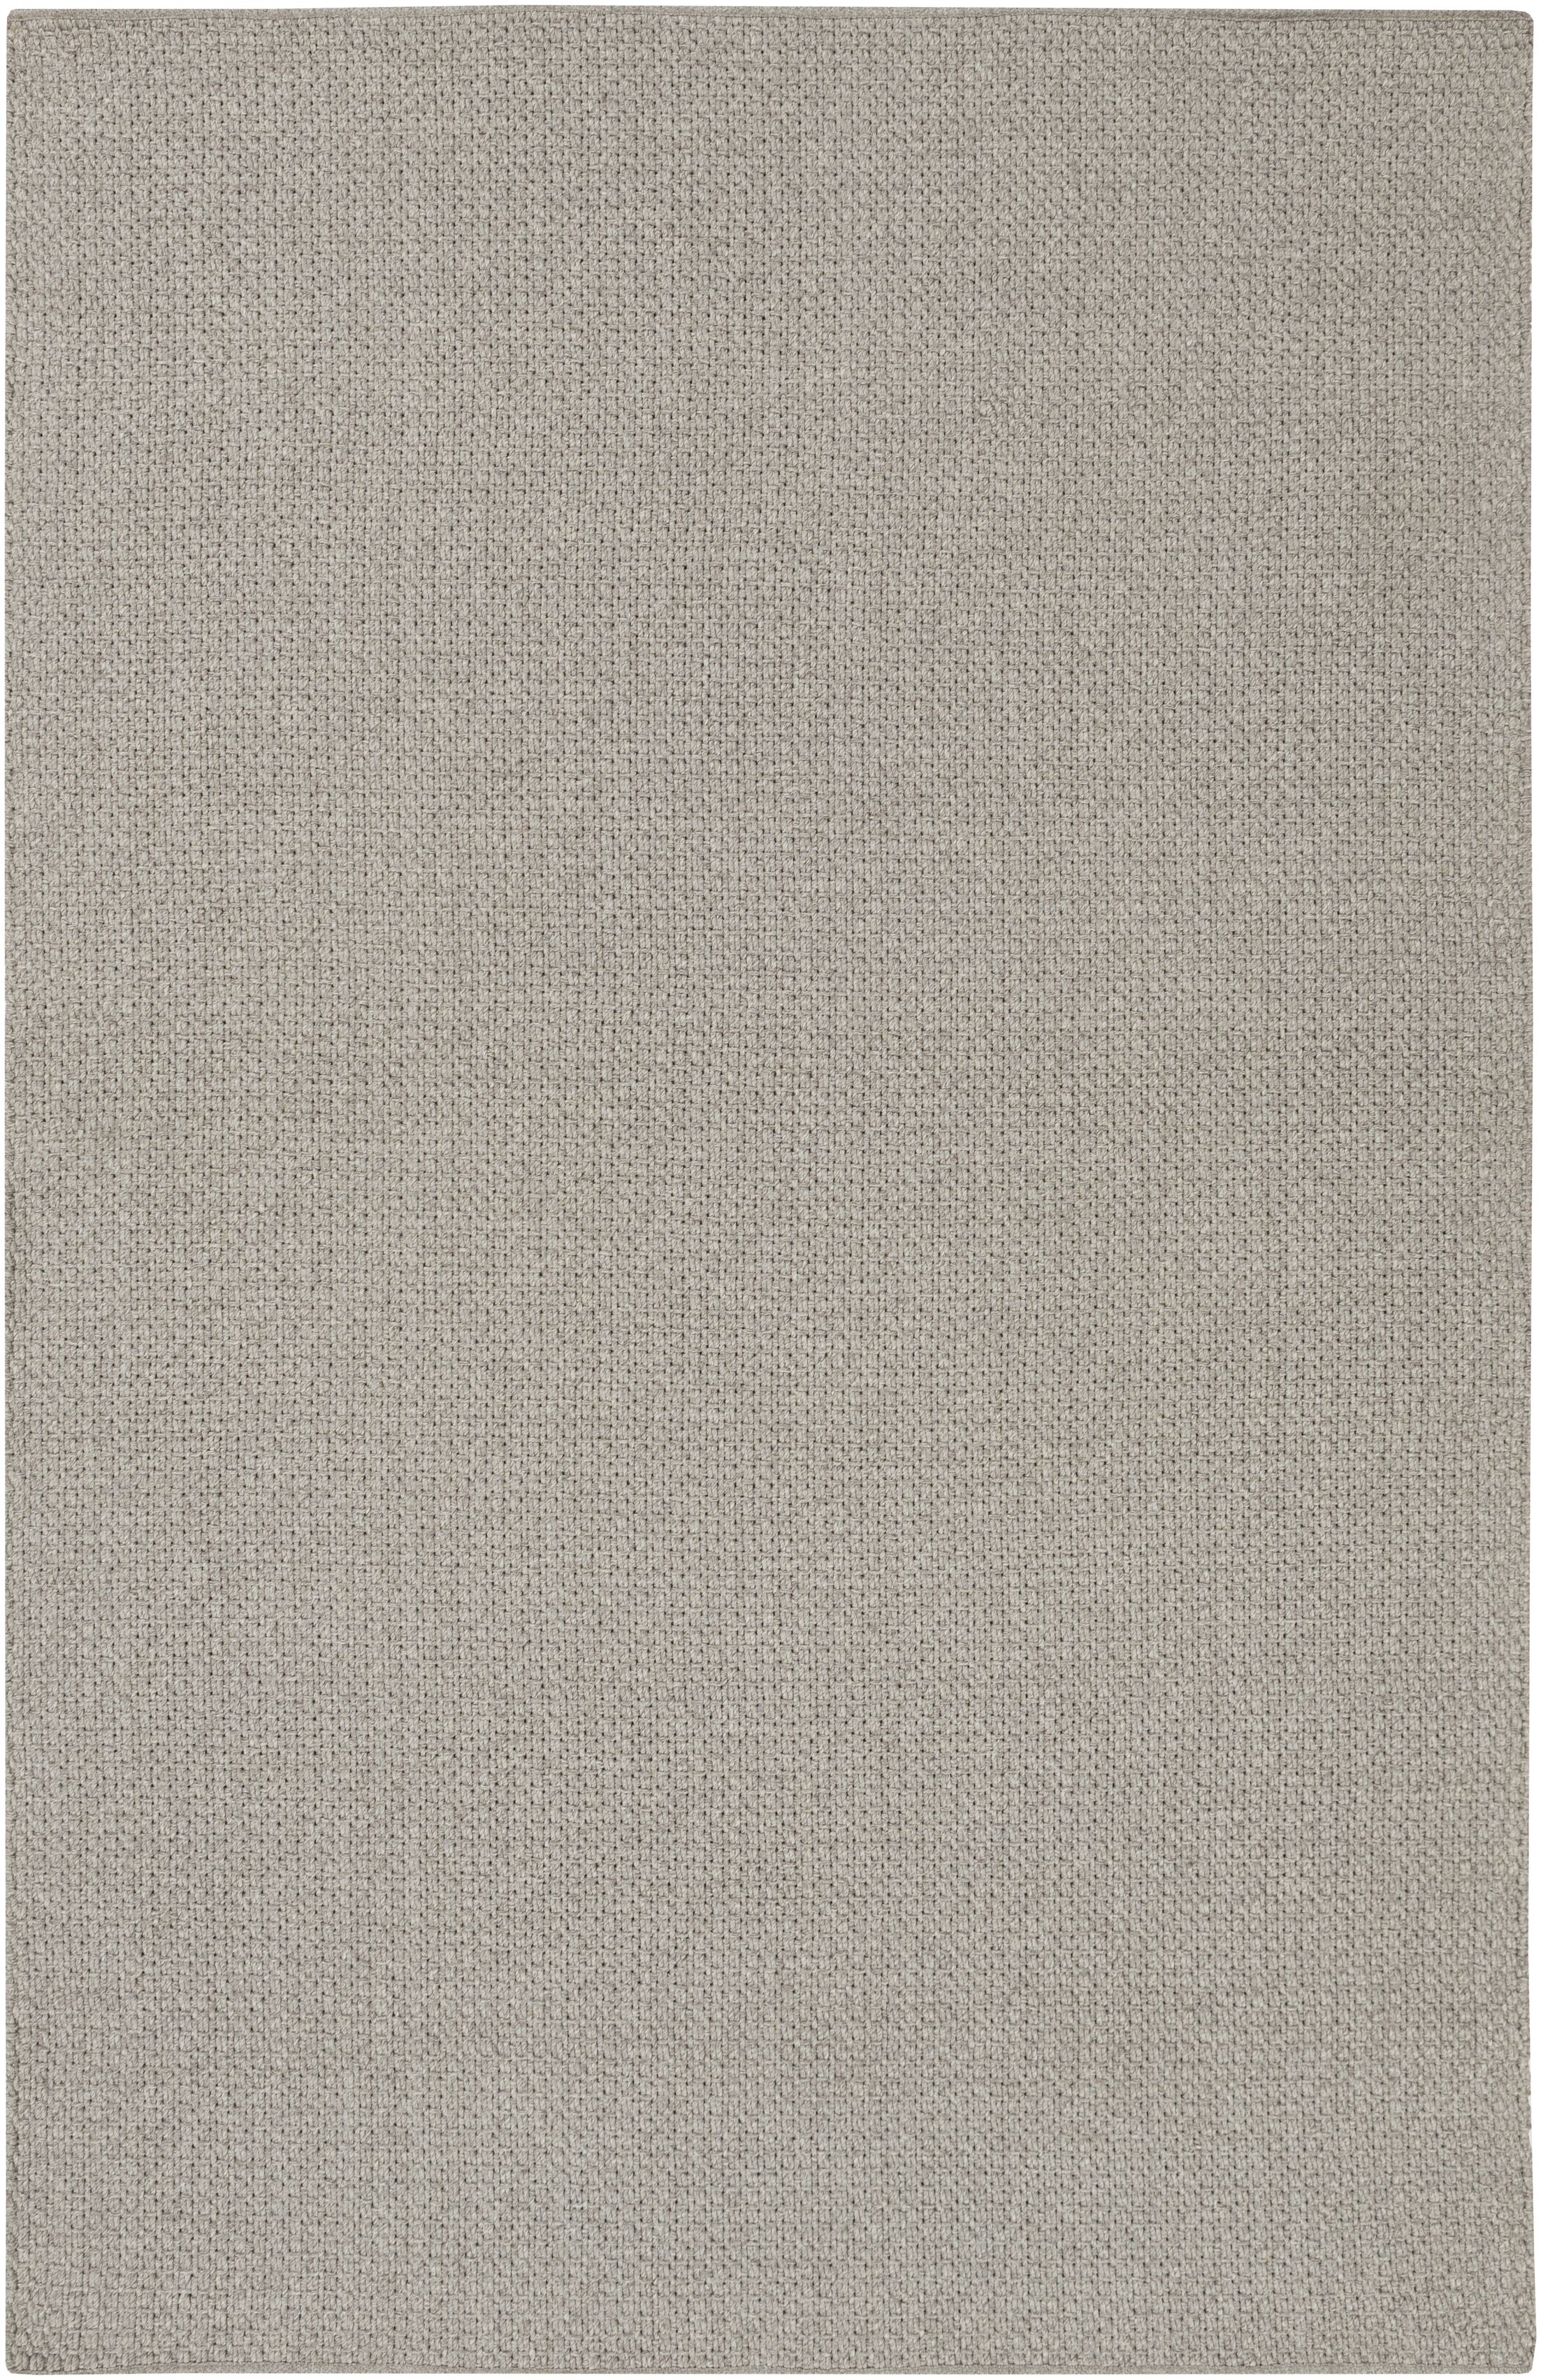 Tabeguache Hand-Woven Gray Indoor/Outdoor Area Rug Rug Size: Rectangle 5'3